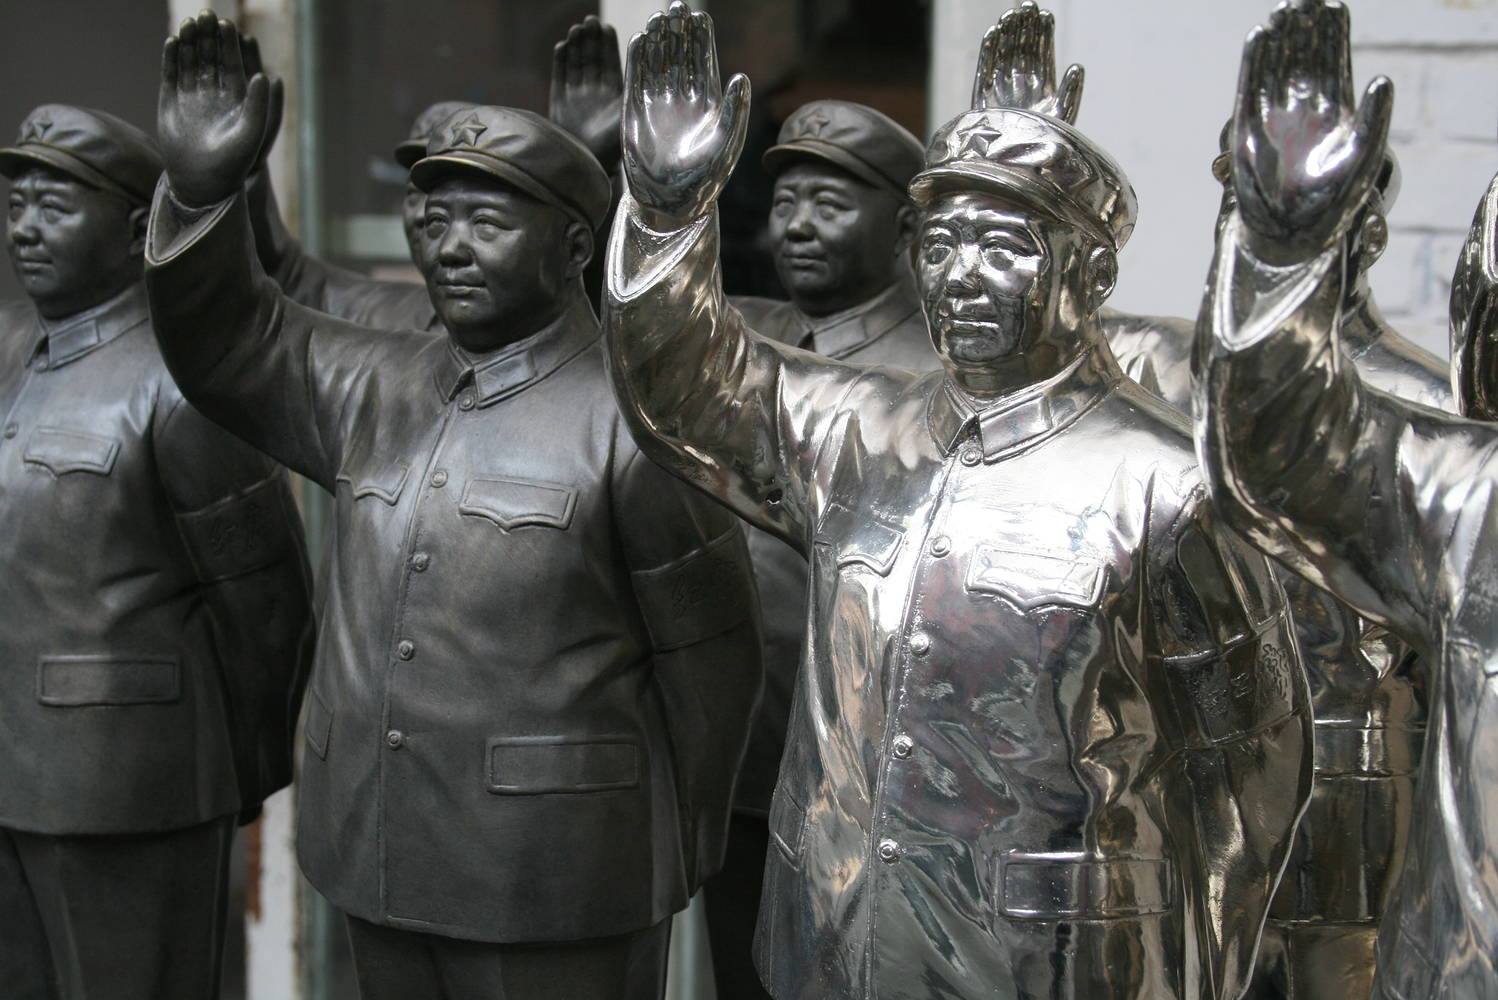 Mao inspired sculpture by Belinda Harrow